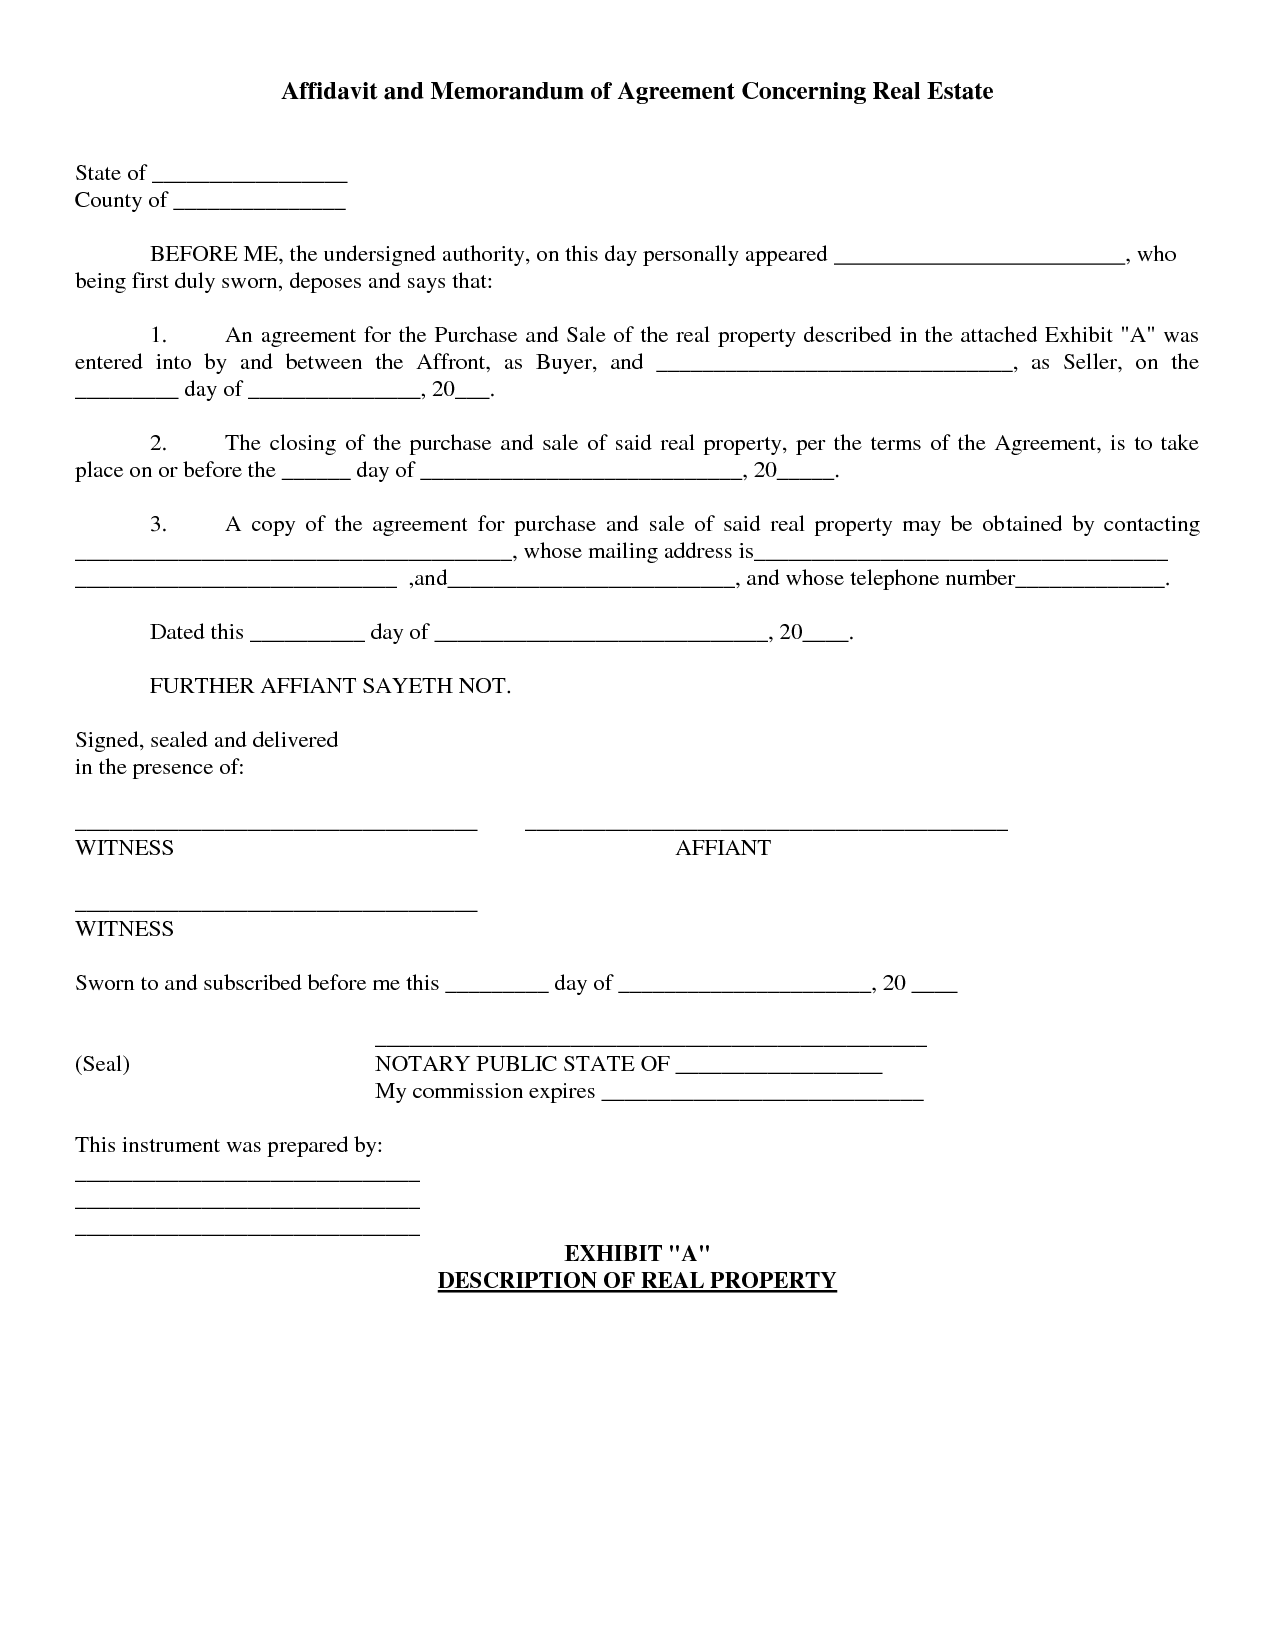 Real estate Real estate contract, Purchase agreement